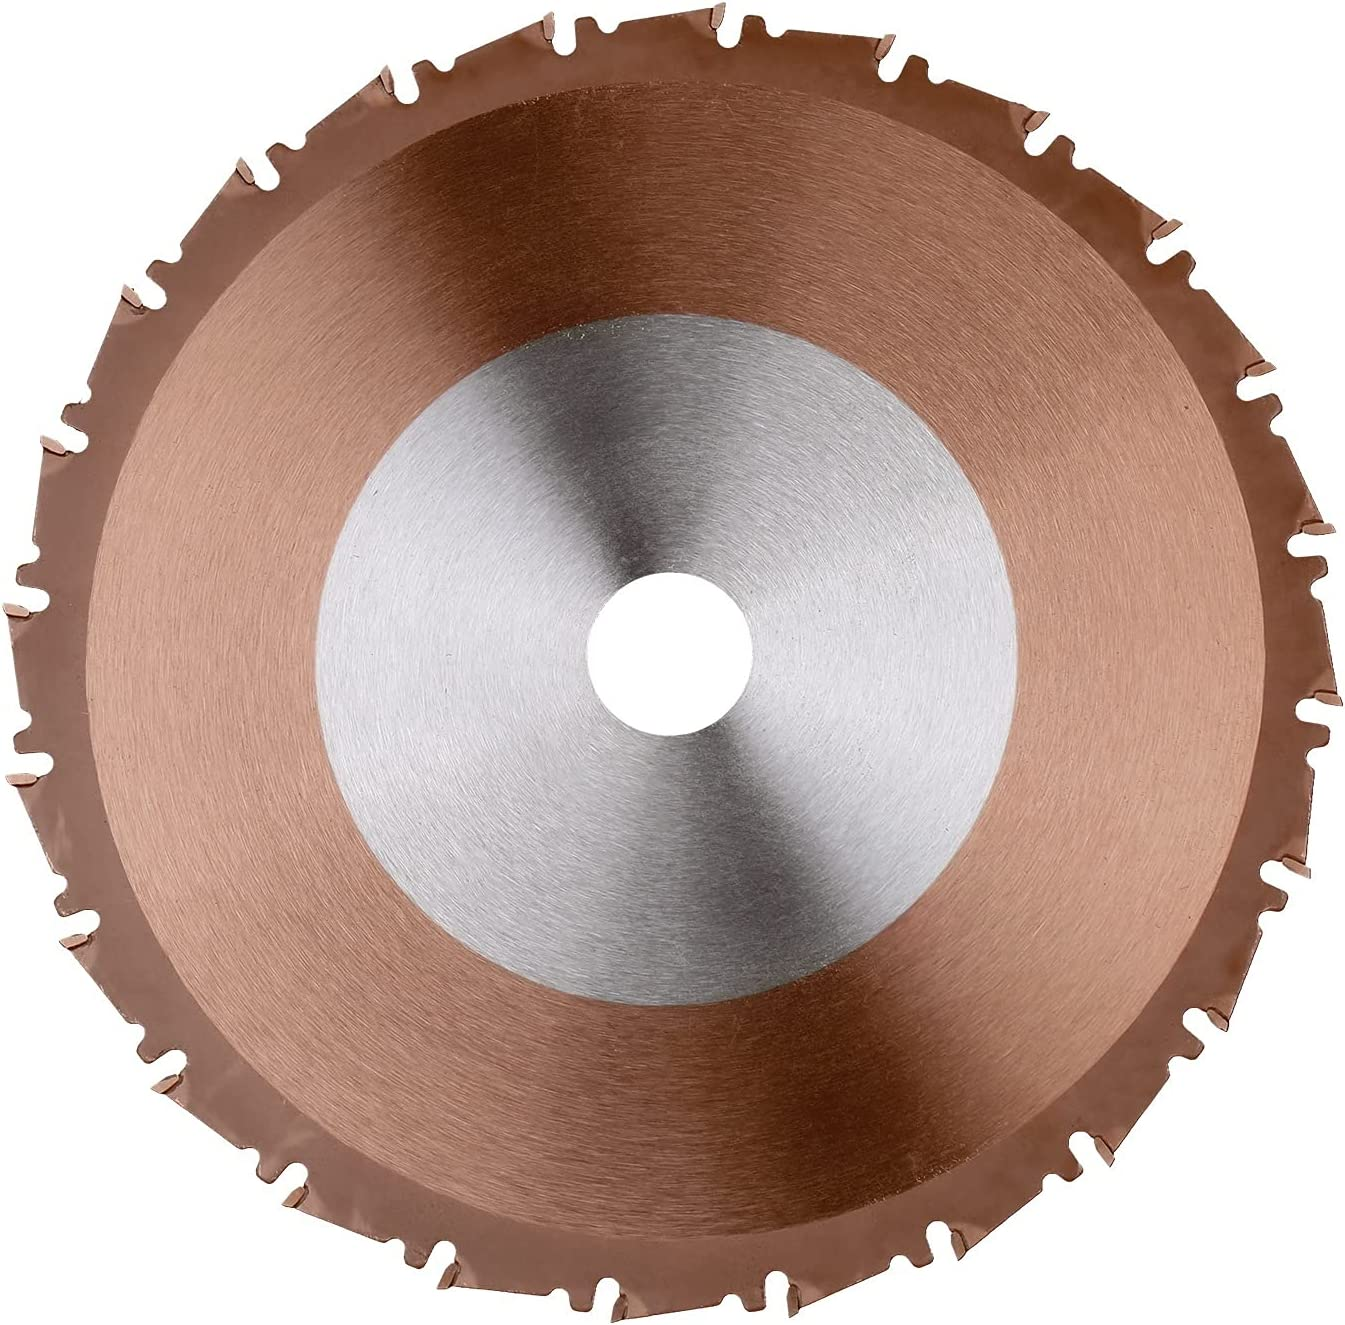 WYDMBH Cutting wheele Carpenter Large discharge sale Saw Woodw Cemented Carbide Blade Max 55% OFF